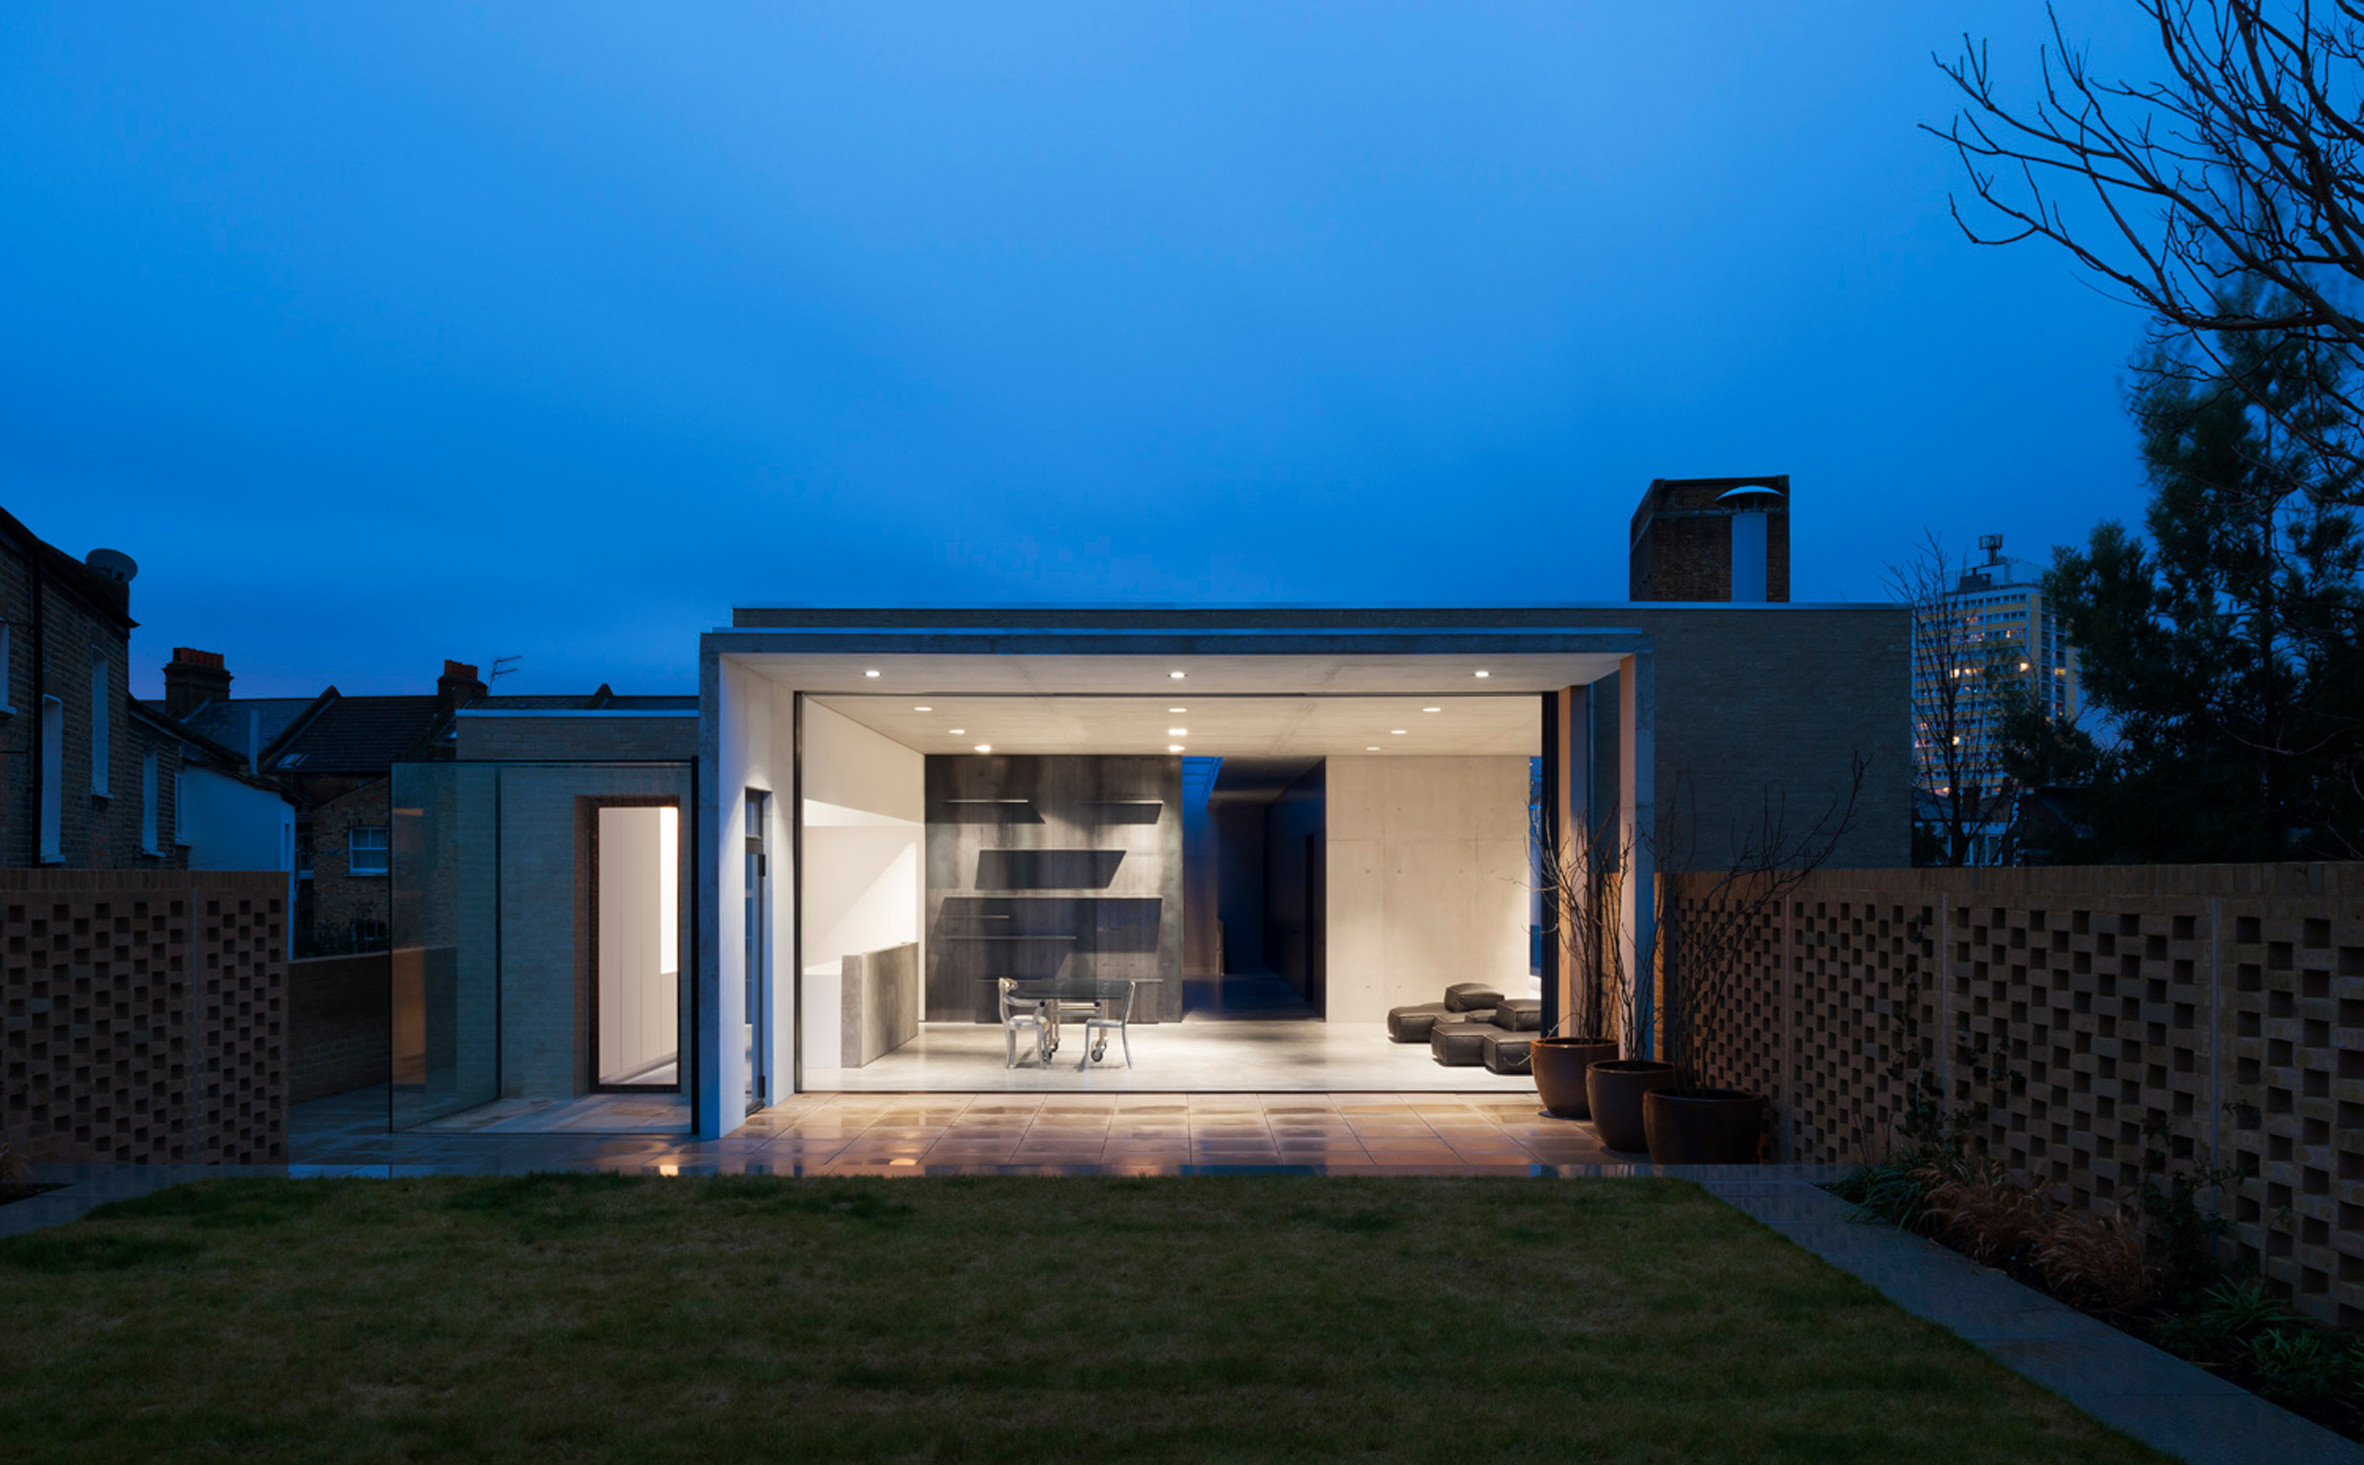 house-studio-lambeth-carmody-groarke-architecture-residential-london-uk_dezeen_2364_col_7